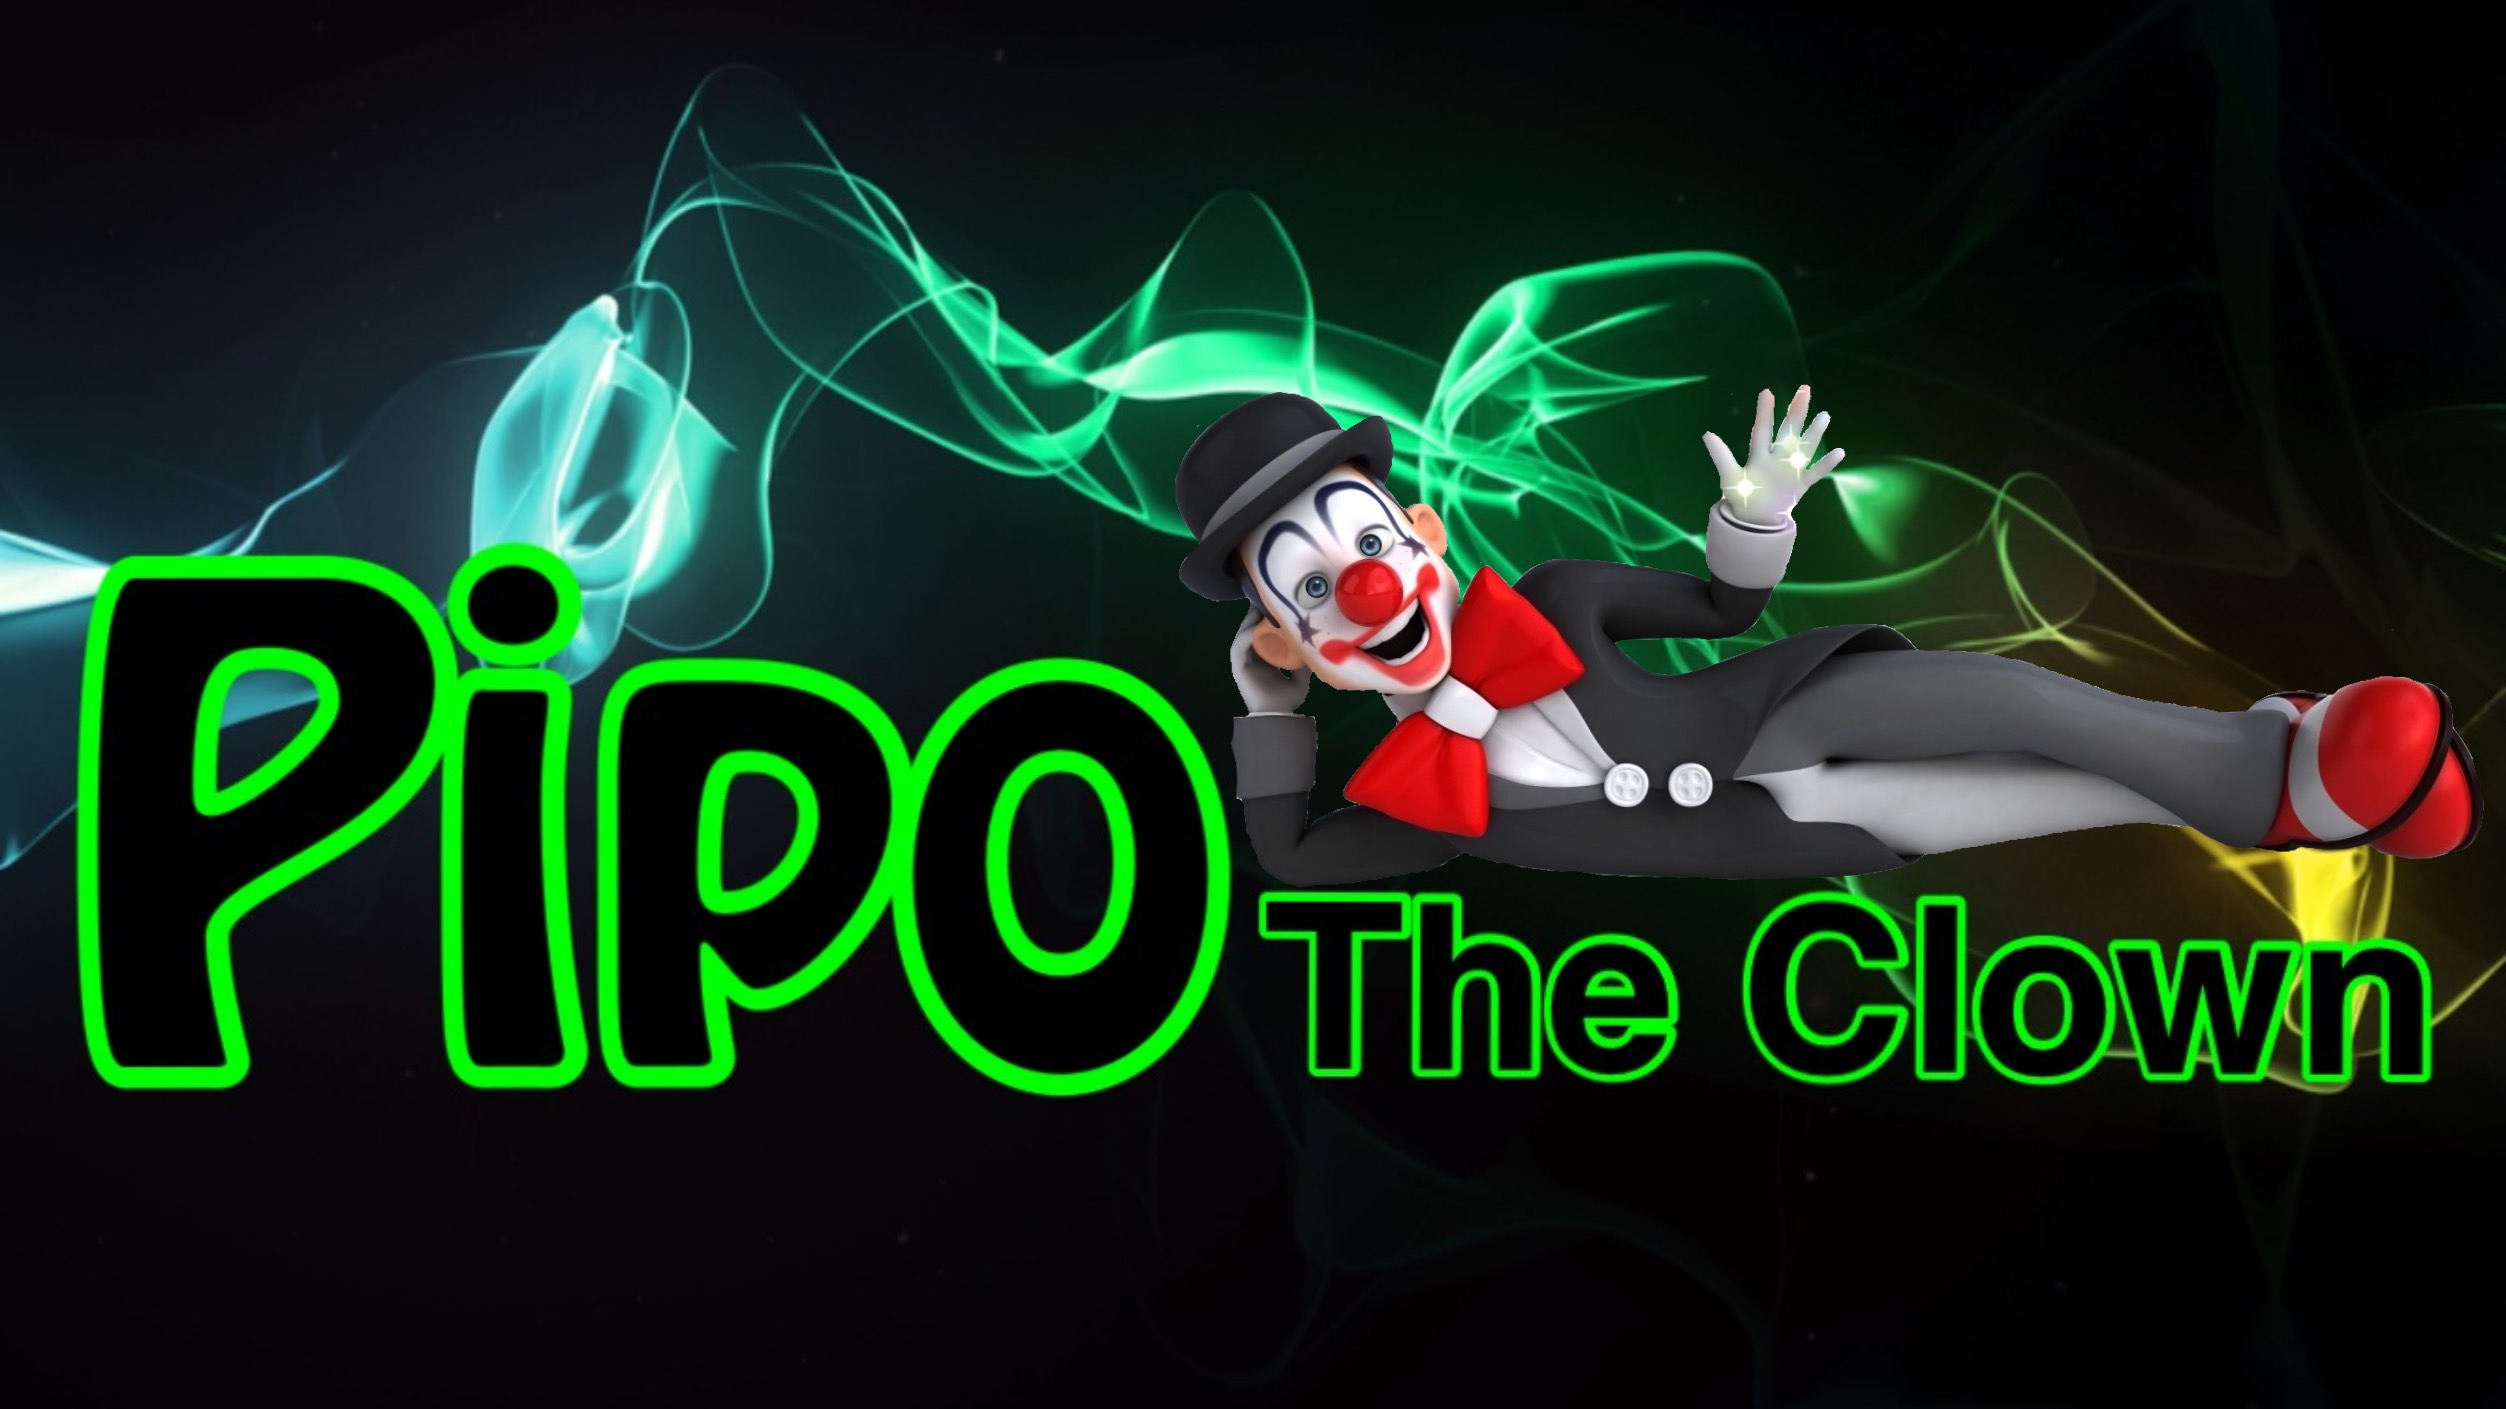 (c) Pipo-the-clown.ch